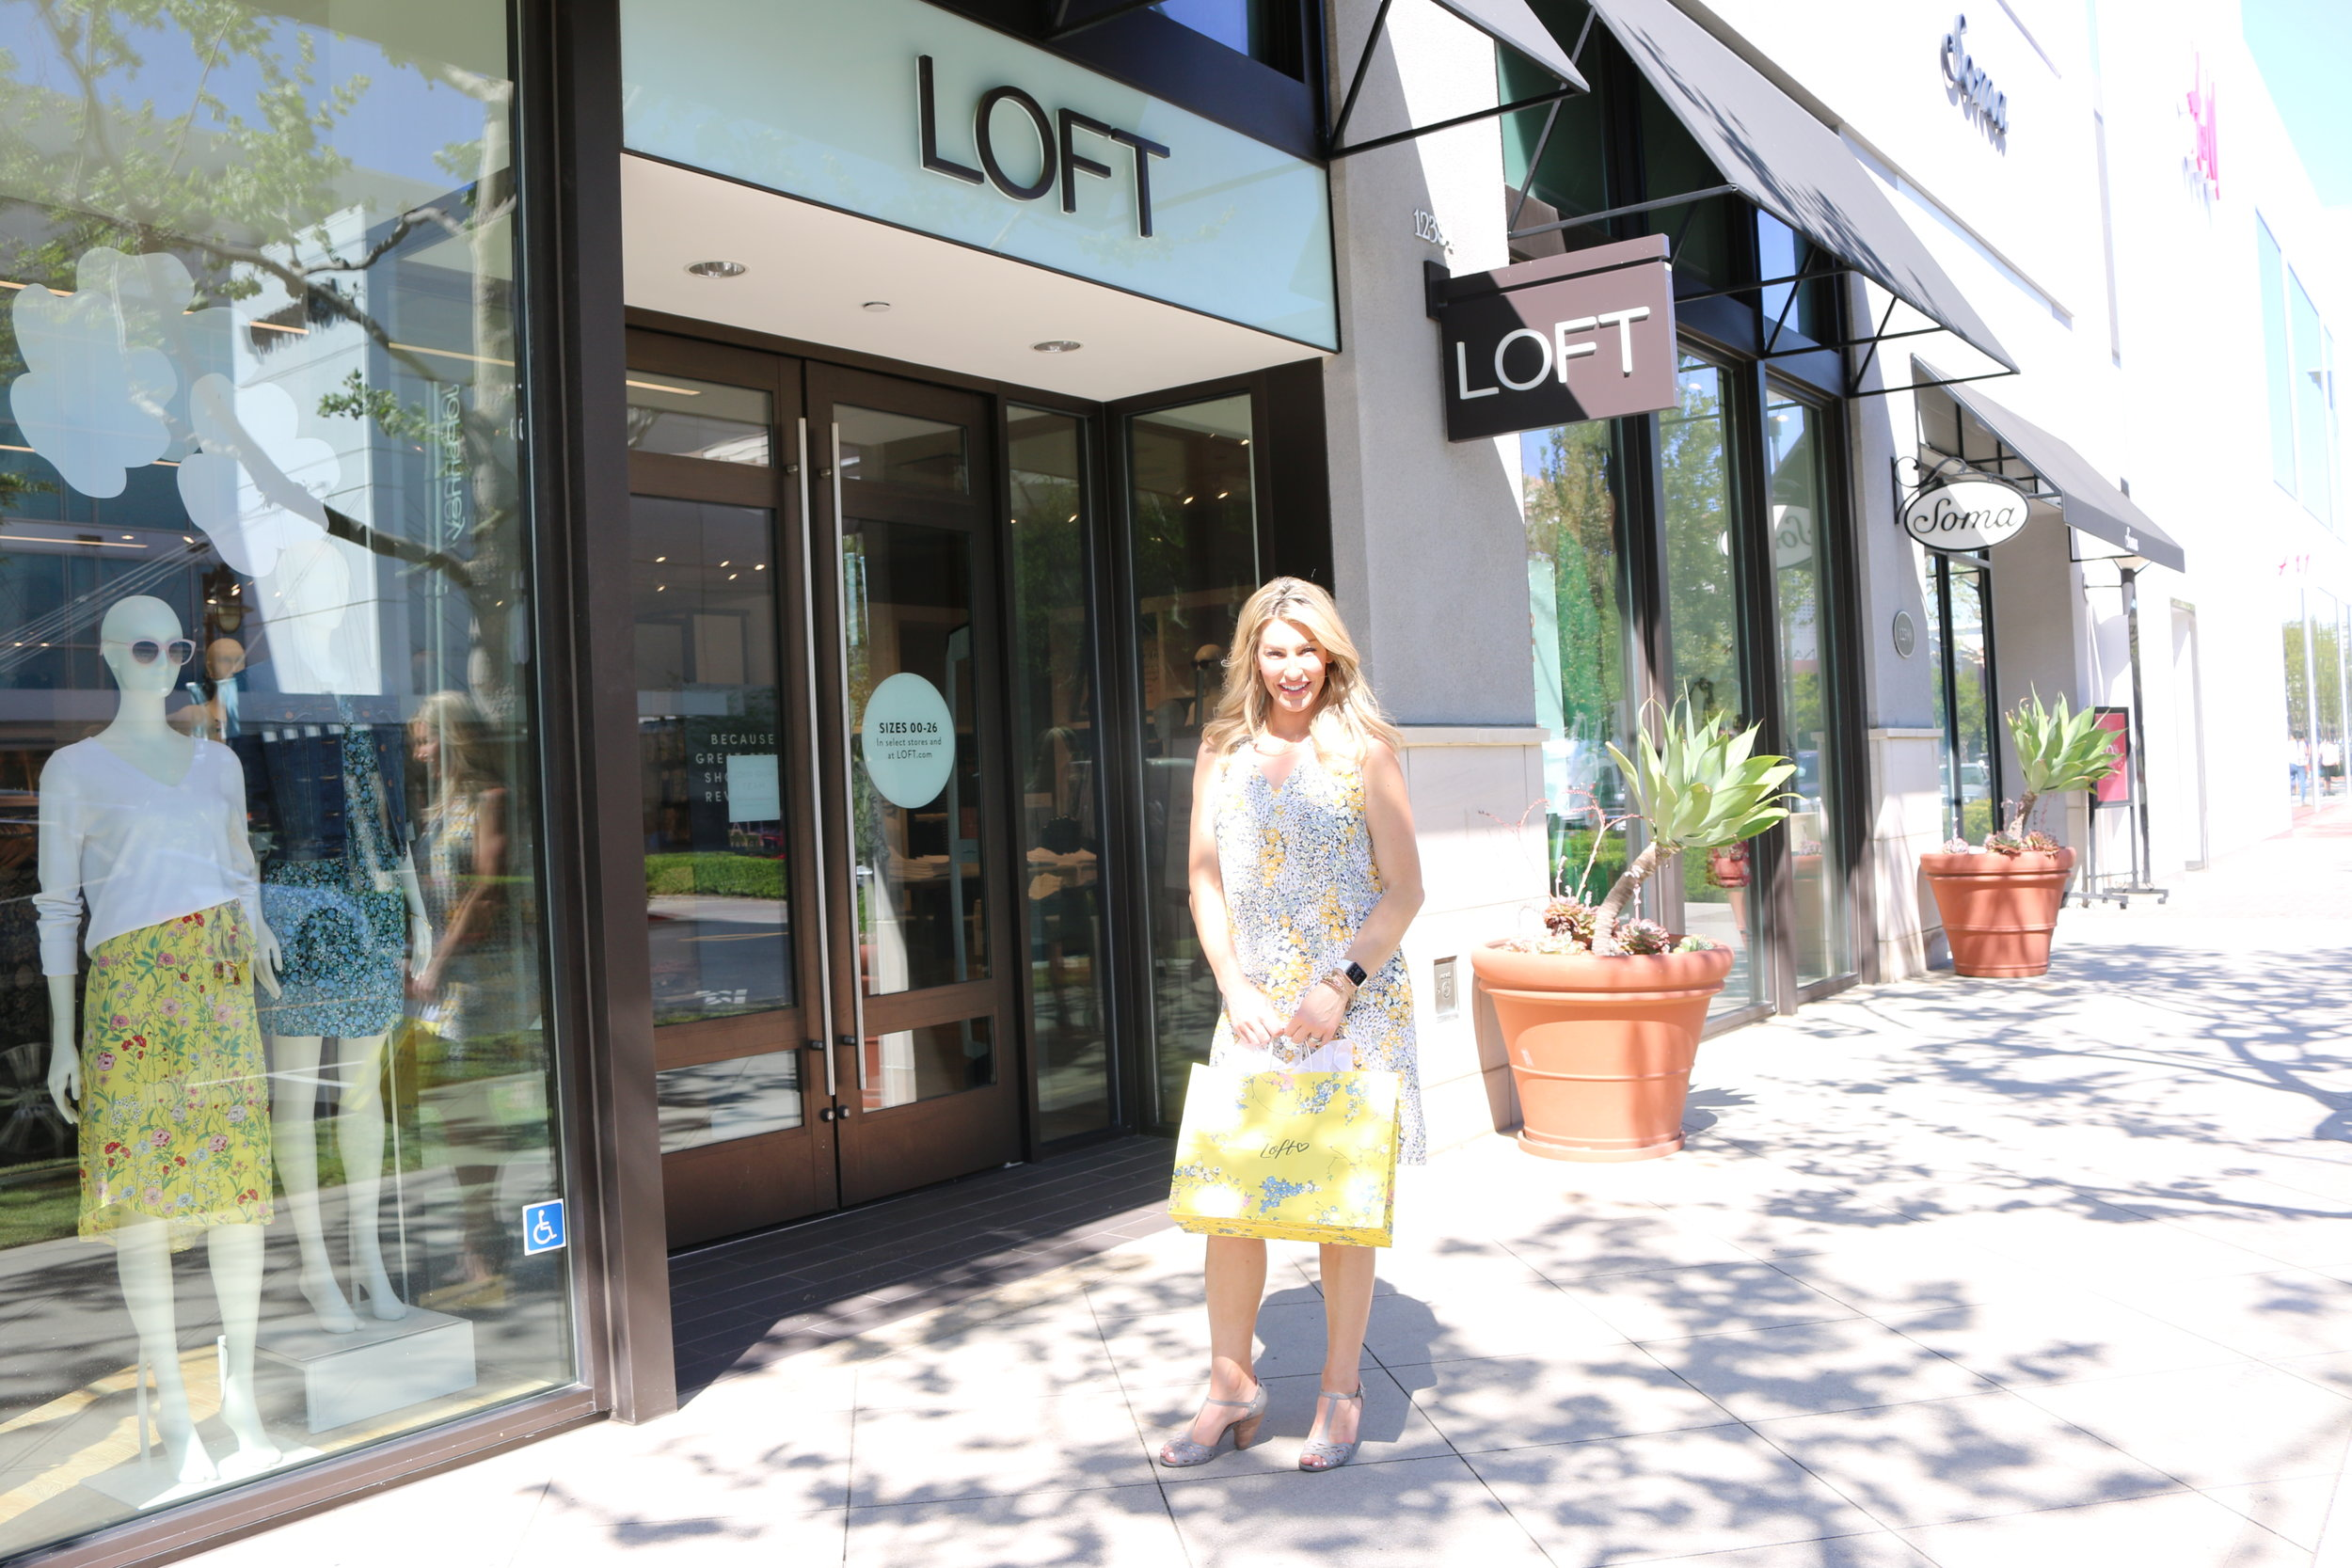 A special thanks to LOFT Victoria Gardens, where you will find the best customer service around town!